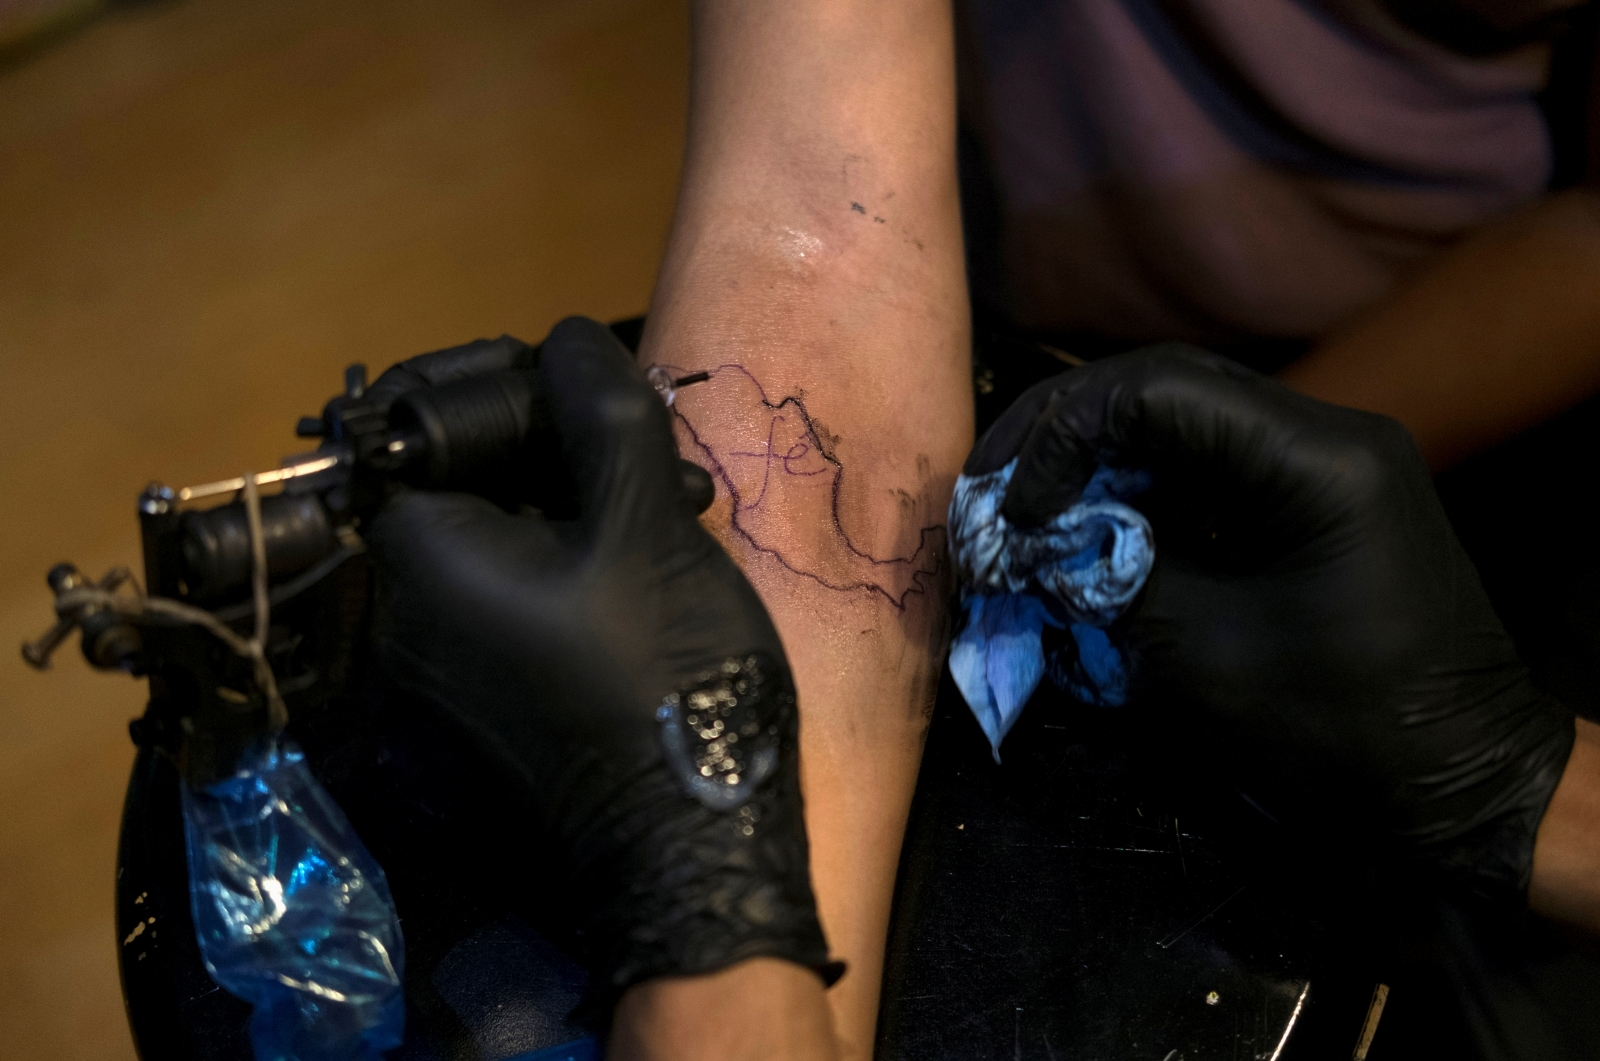 Smart Tattoo Monitors Health